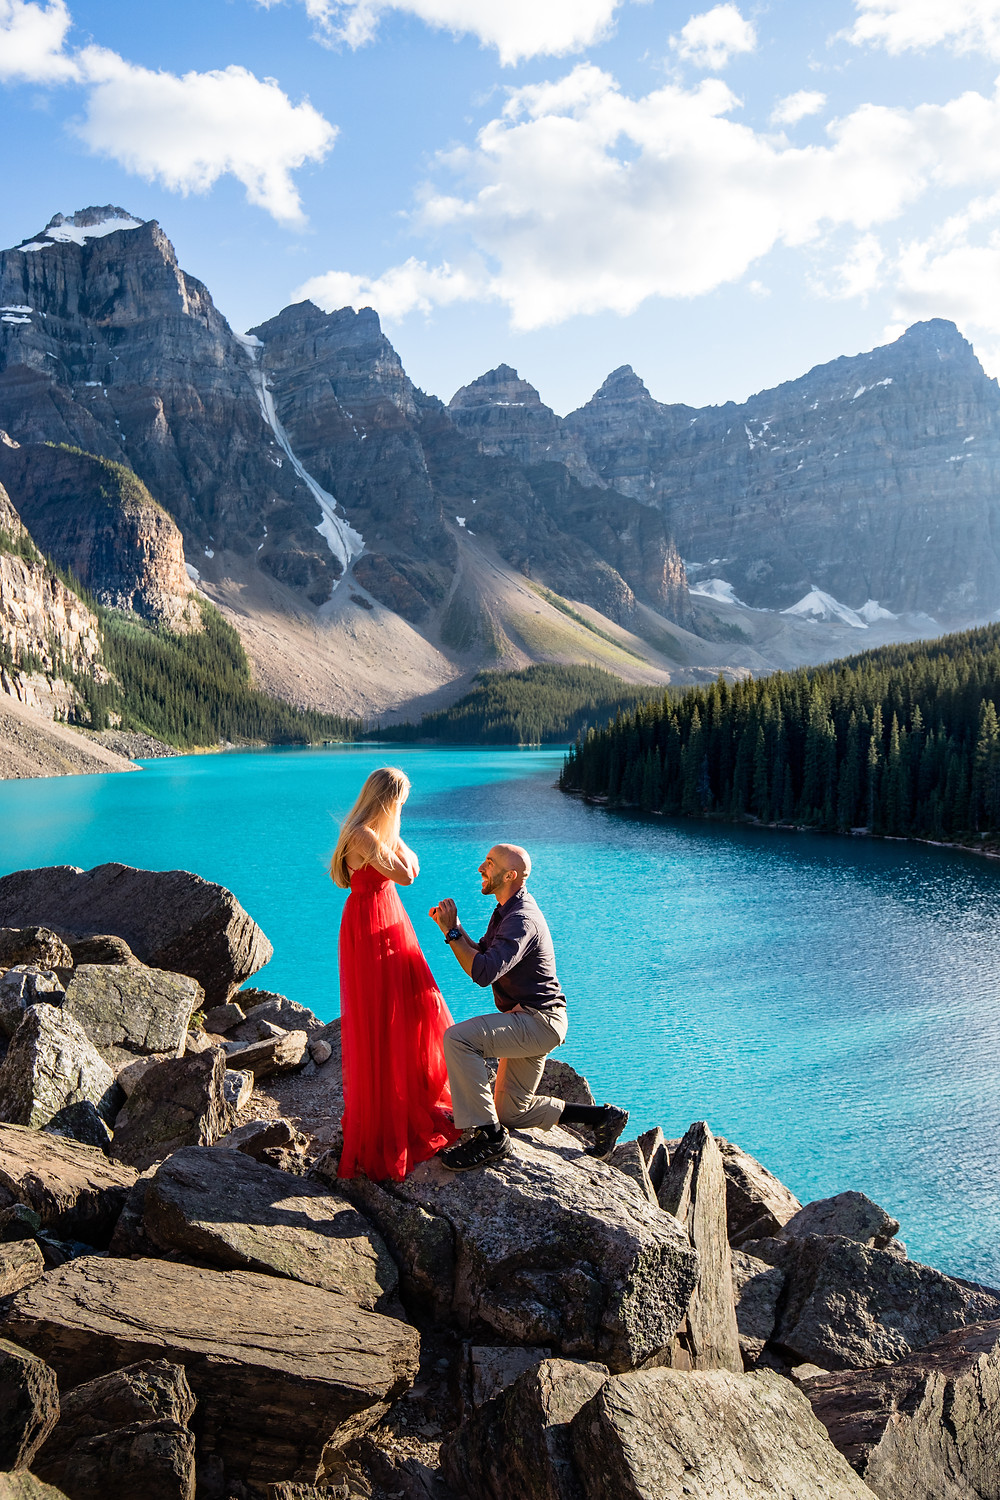 Moraine Lake, Surprise Proposal, Down on one knee, banff national park